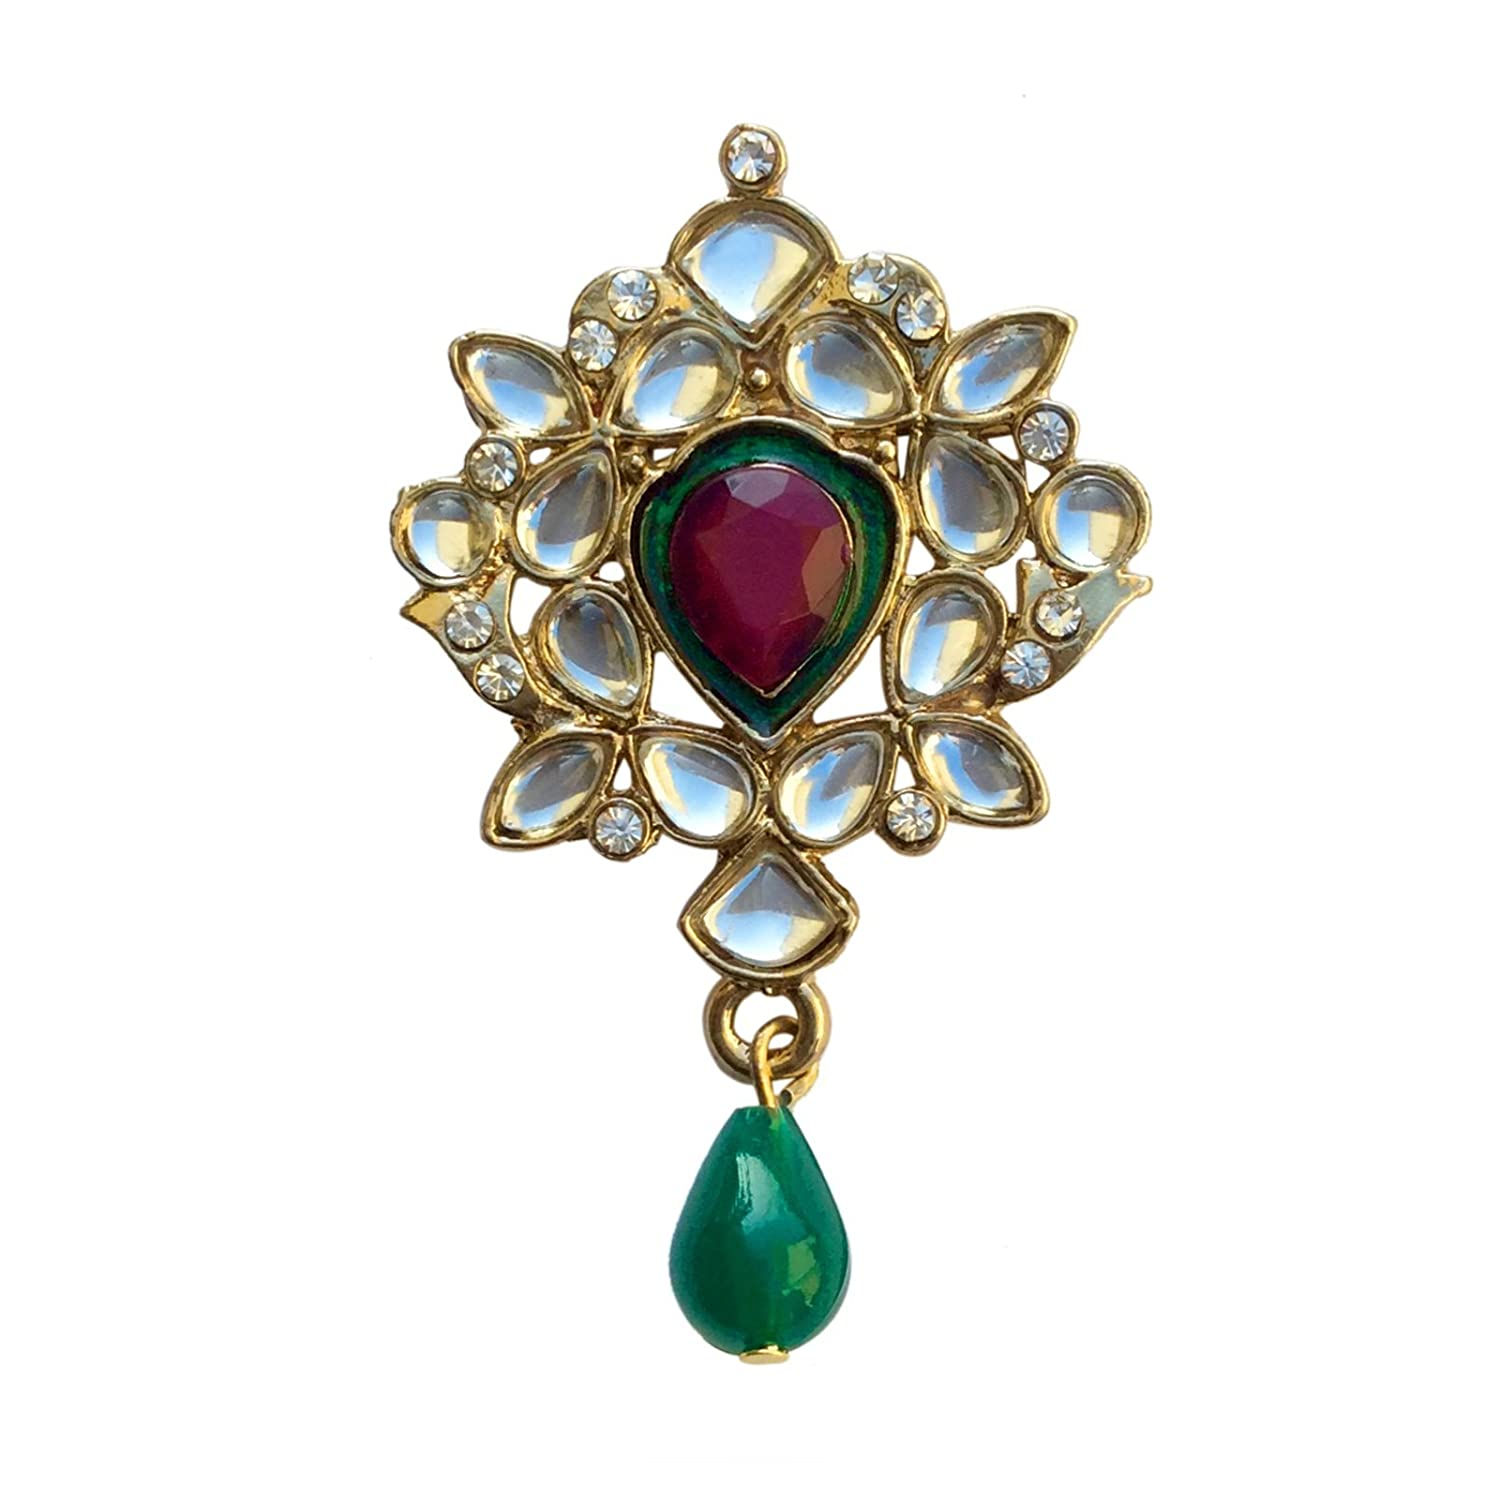 ruby rose wow womens victorian find estate product green pendant gold fill brooch pin garnet jewellery jewelry antique